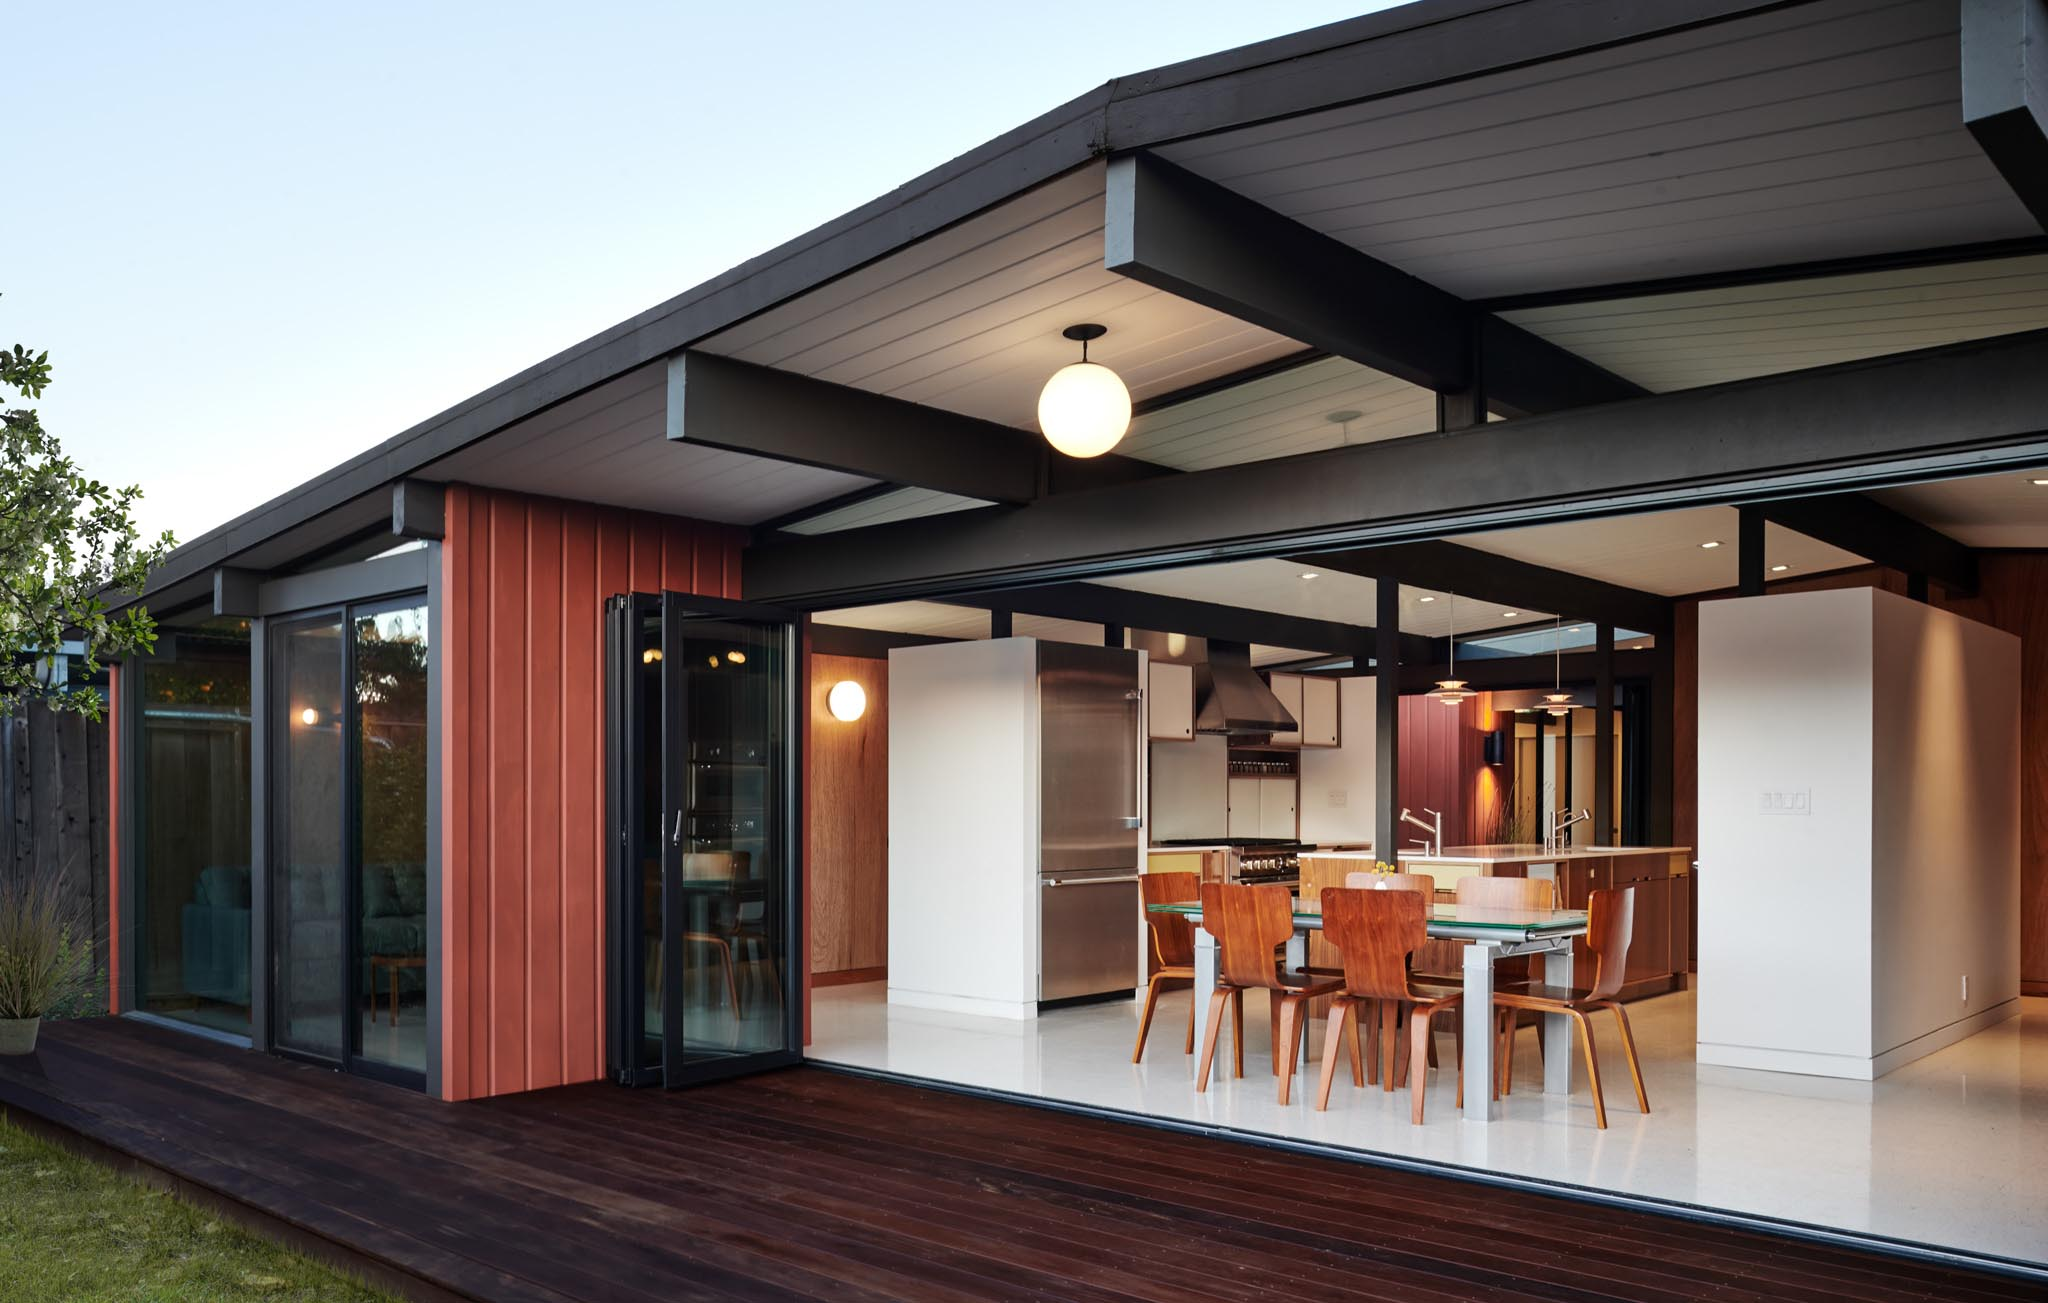 Morepark Eichler home remodeled to meet title 24